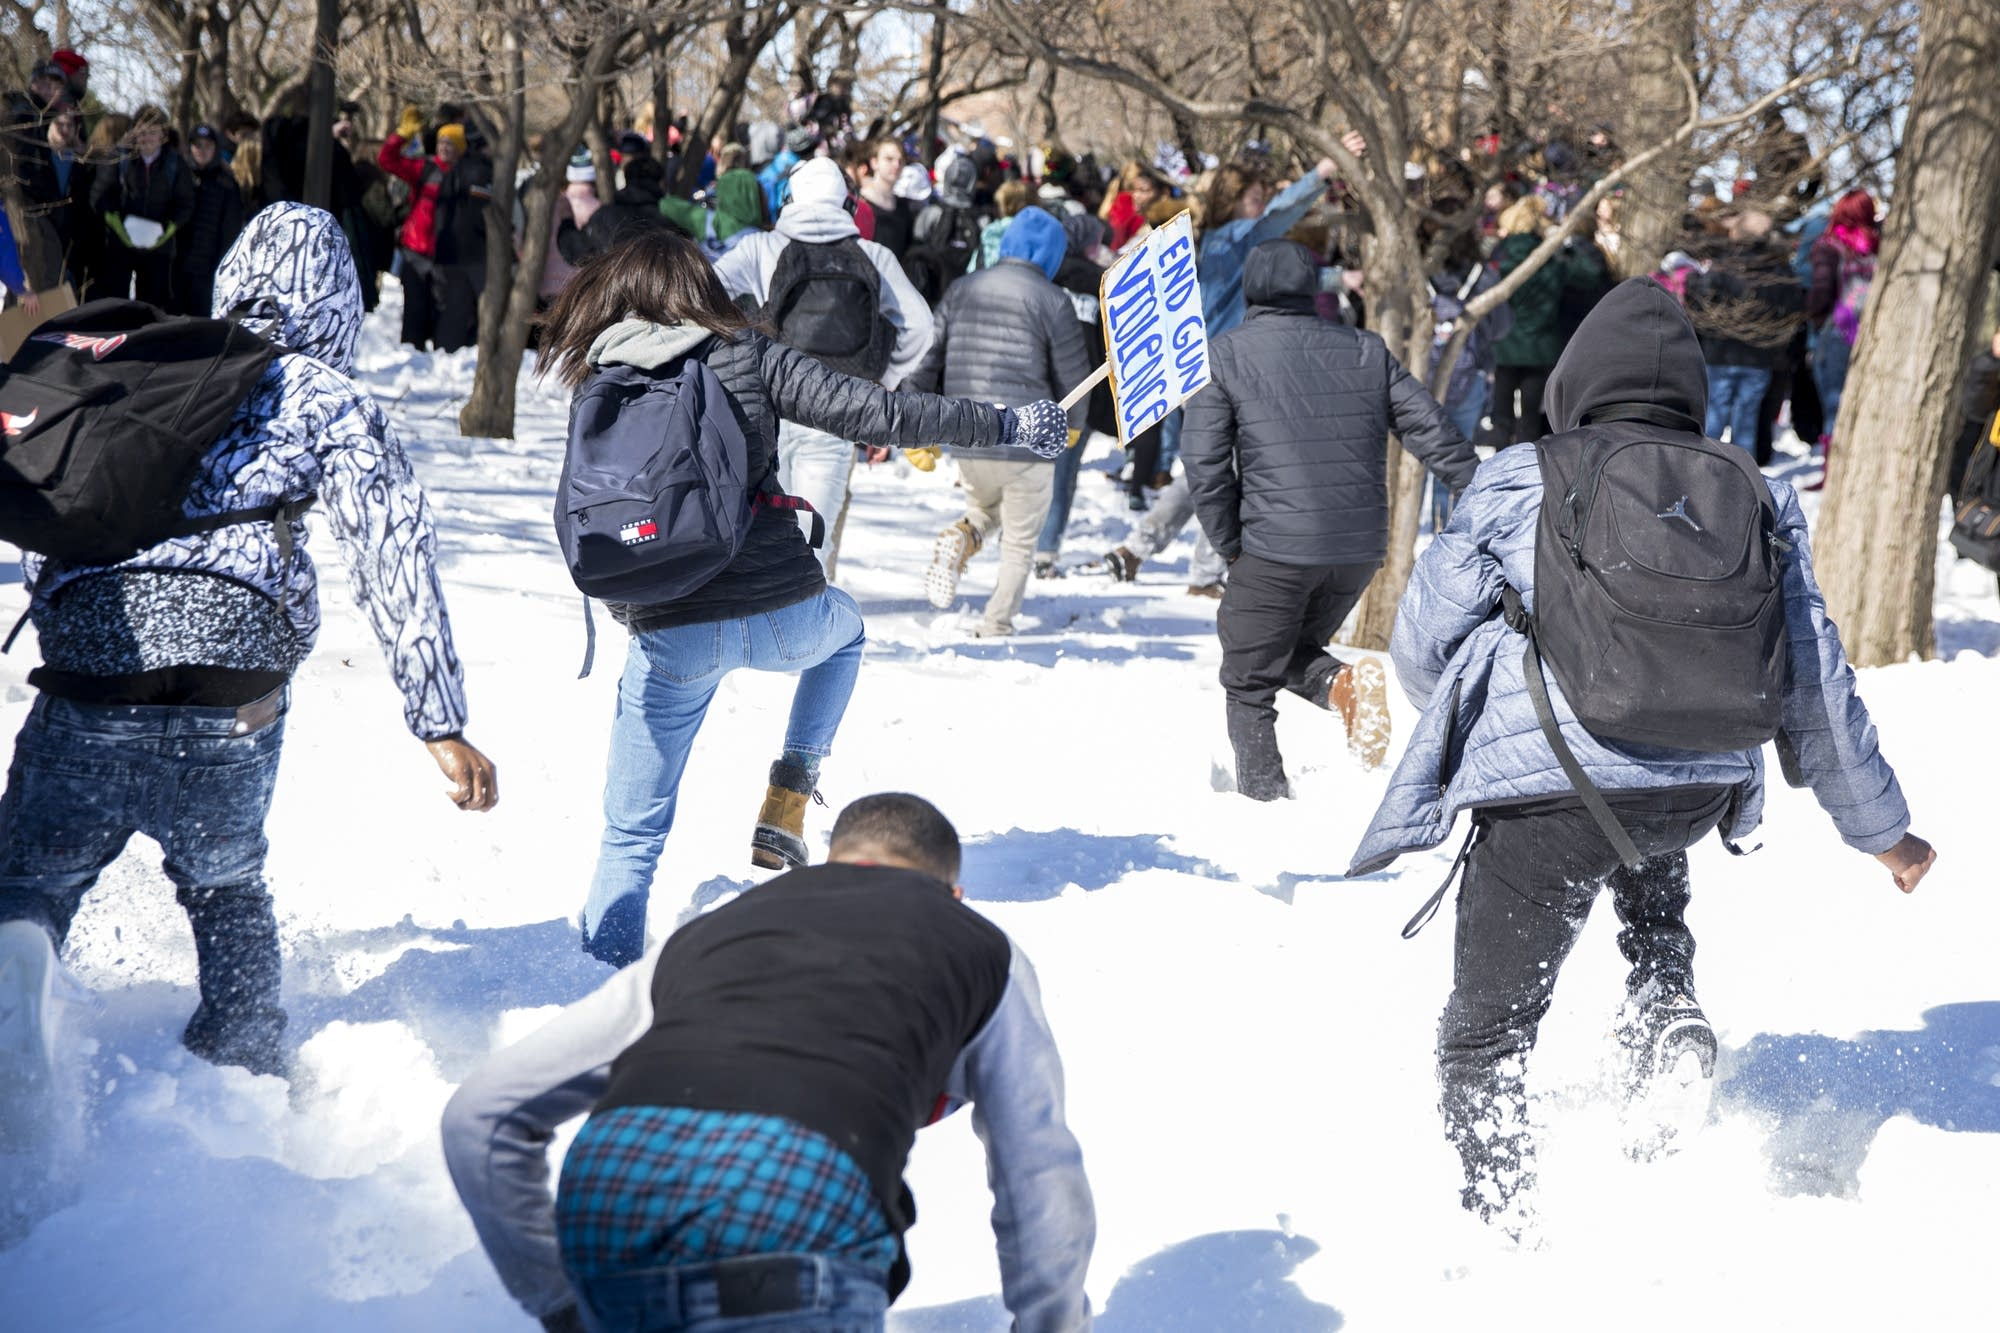 Students run through deep snow in Leif Erikson Park